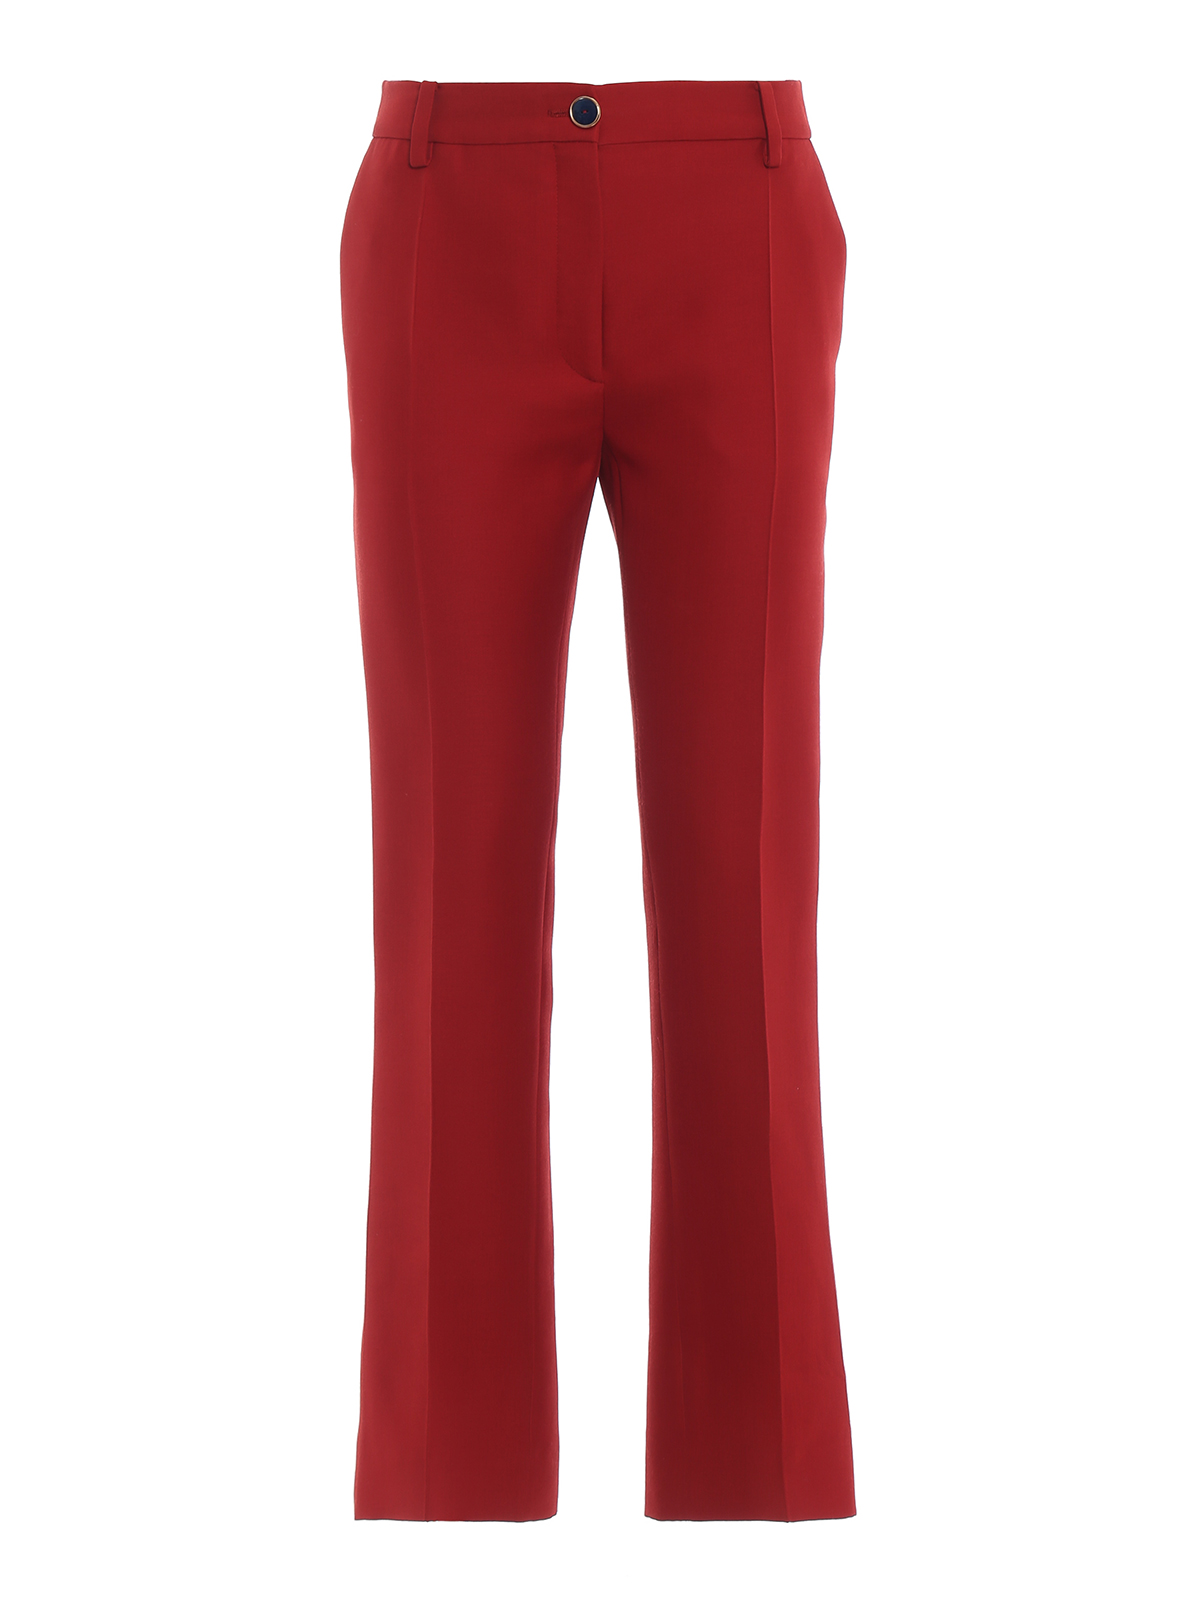 92206145fbd7 VALENTINO  Tailored   Formal trousers - Wool and silk high rise trousers